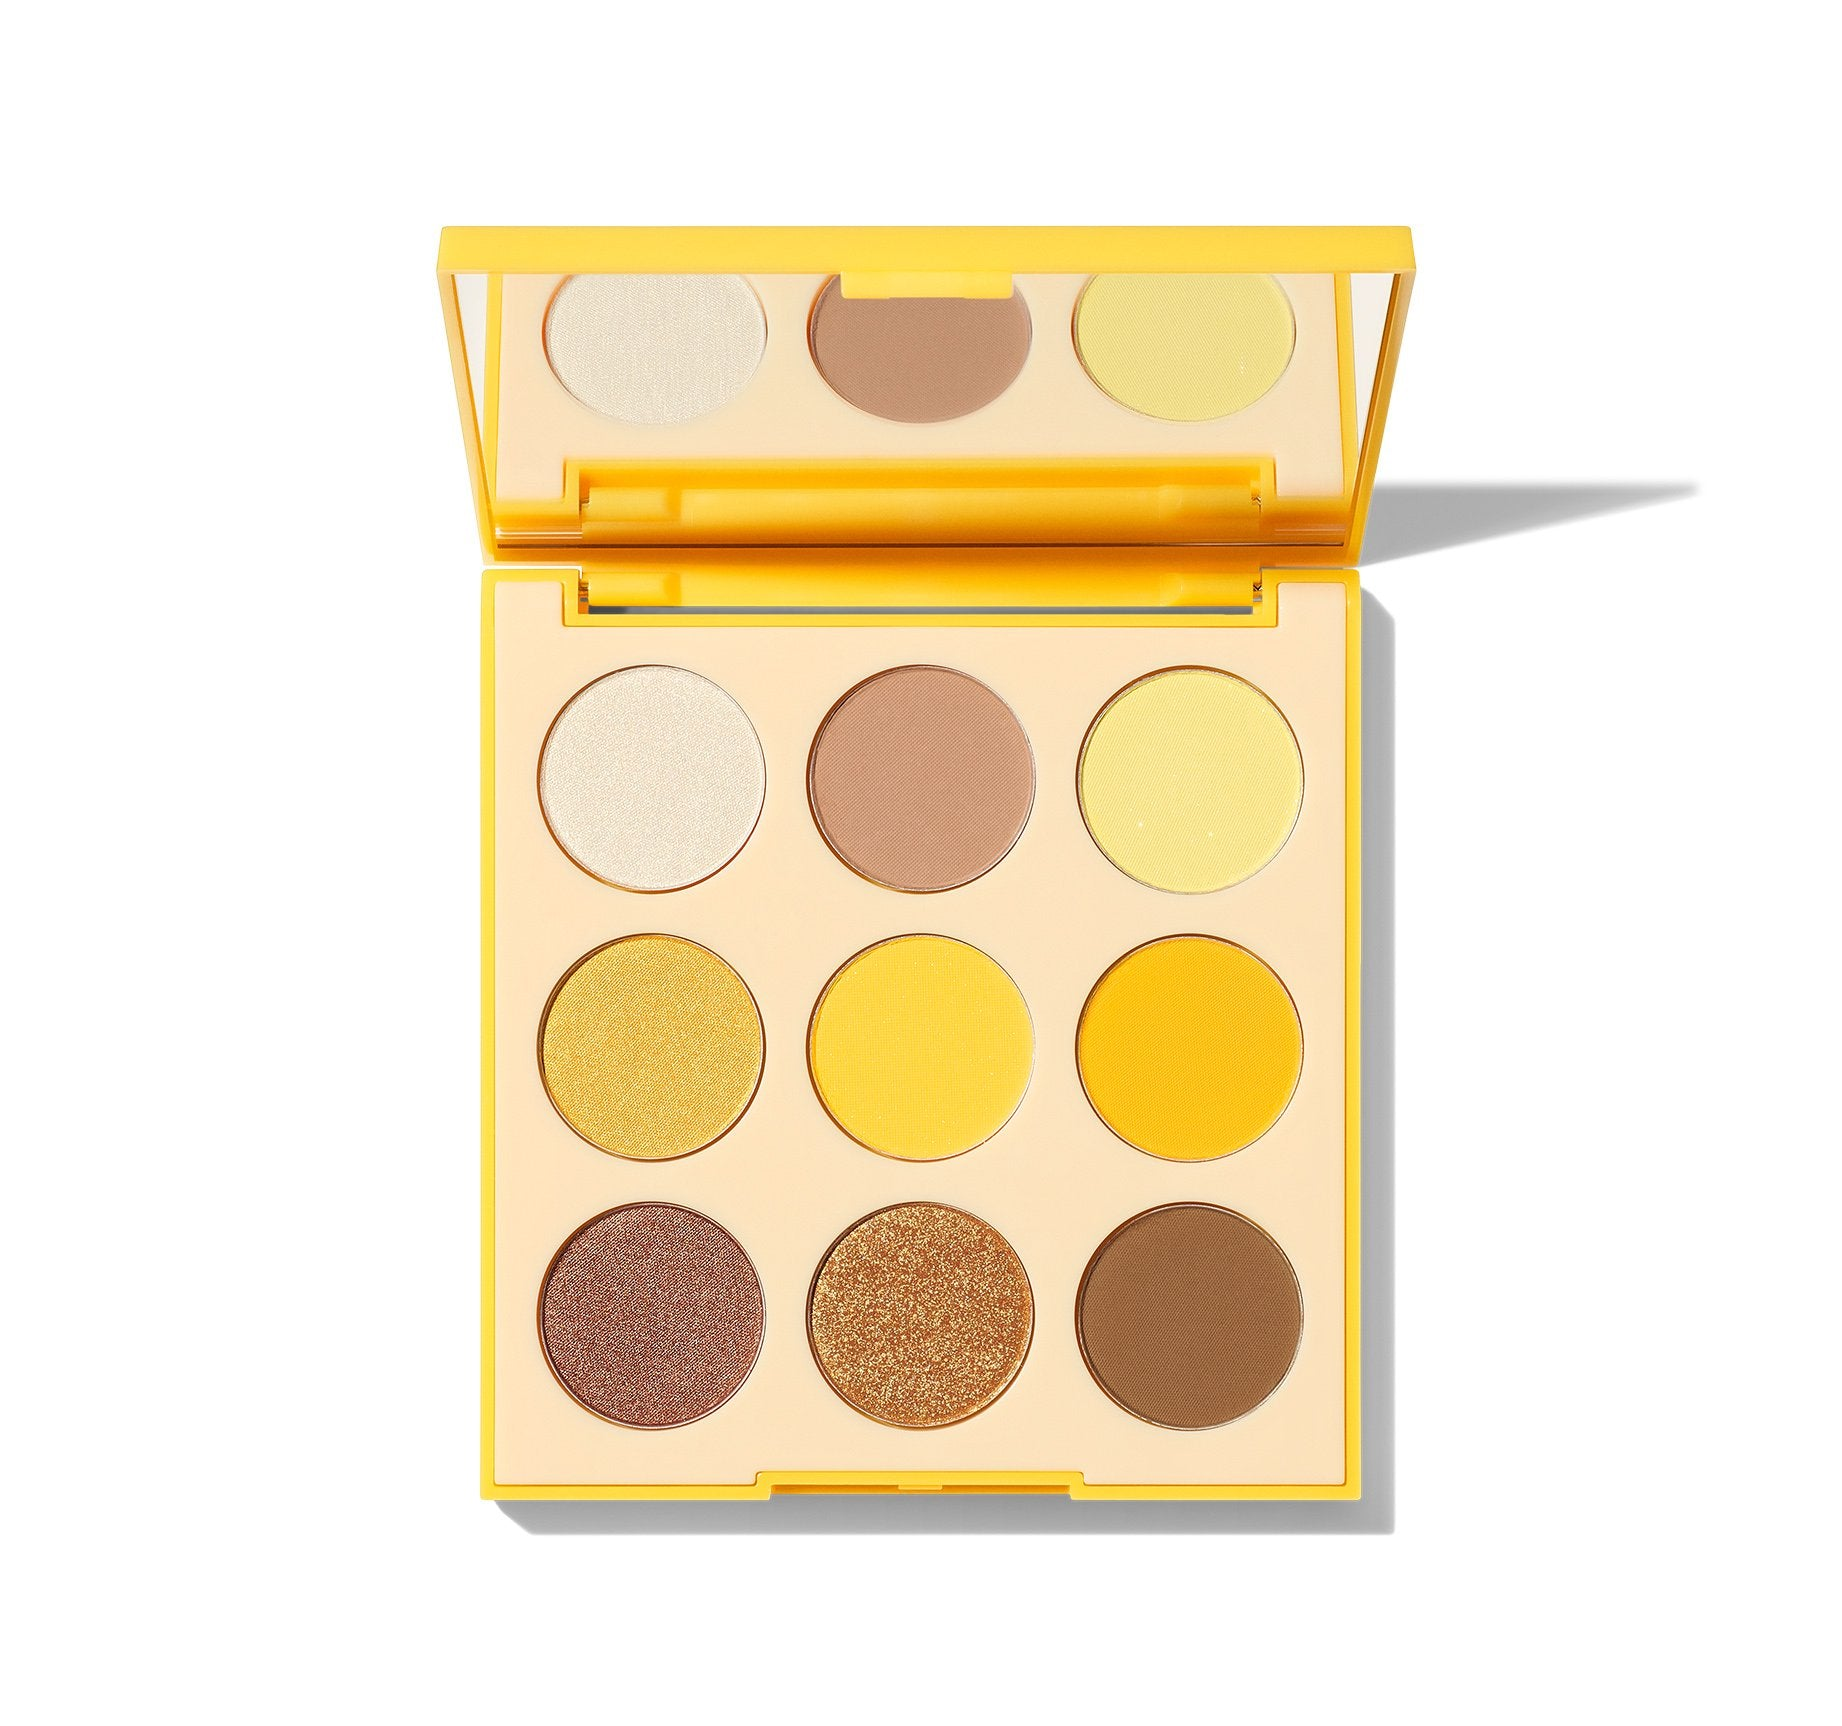 9U CATCH THE SUN ARTISTRY PALETTE, view larger image